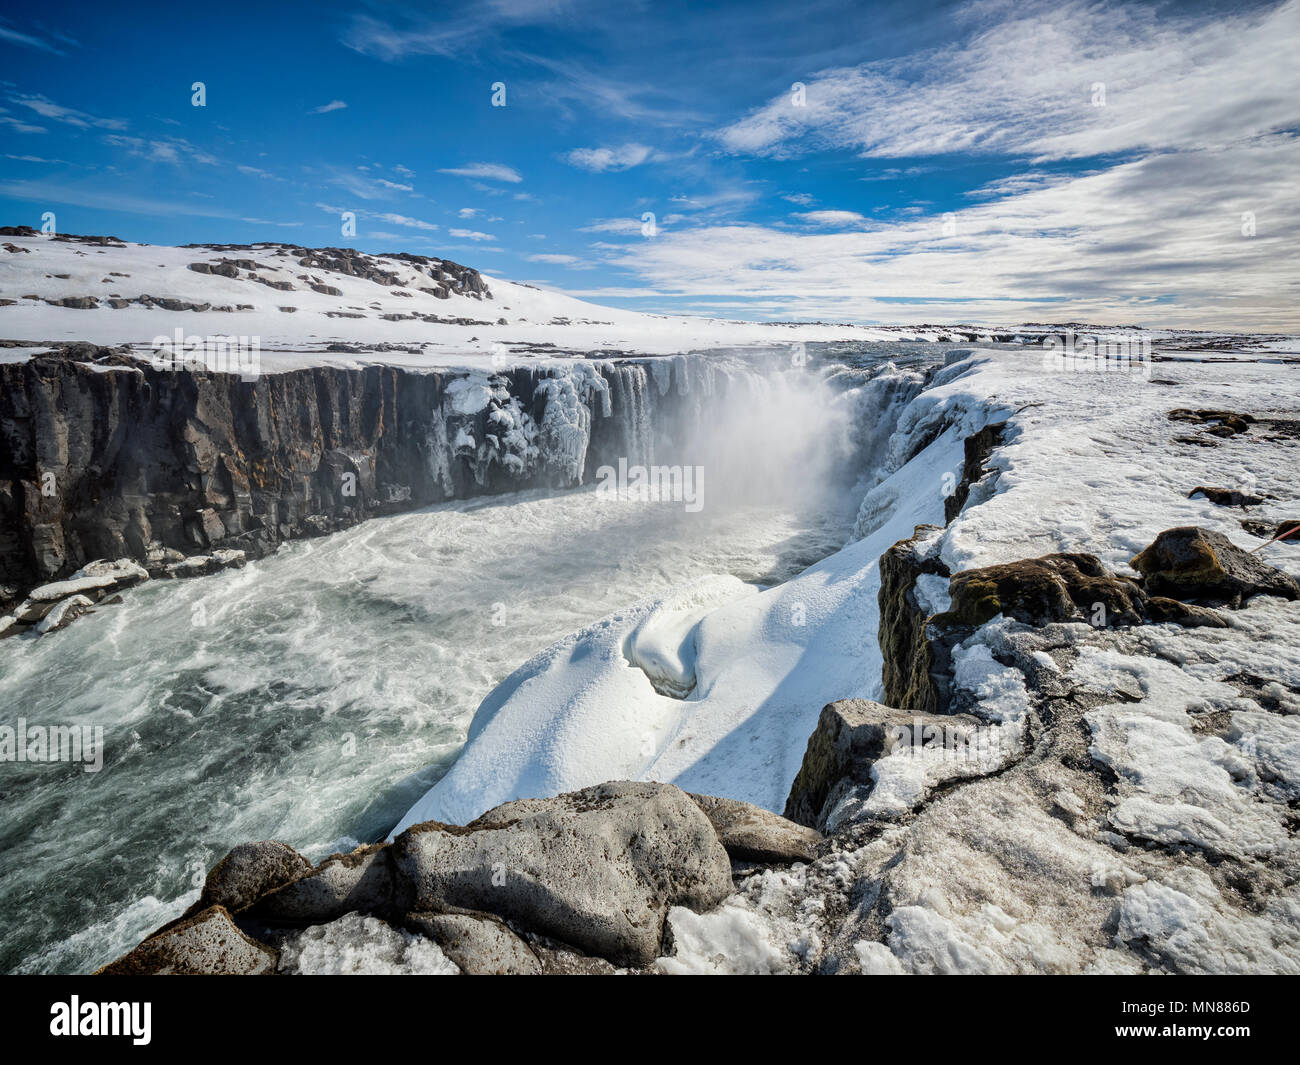 Selfoss waterfall on the Jokulsa a Fjollum river in Northern Iceland, upstream from the Dettifoss falls. - Stock Image